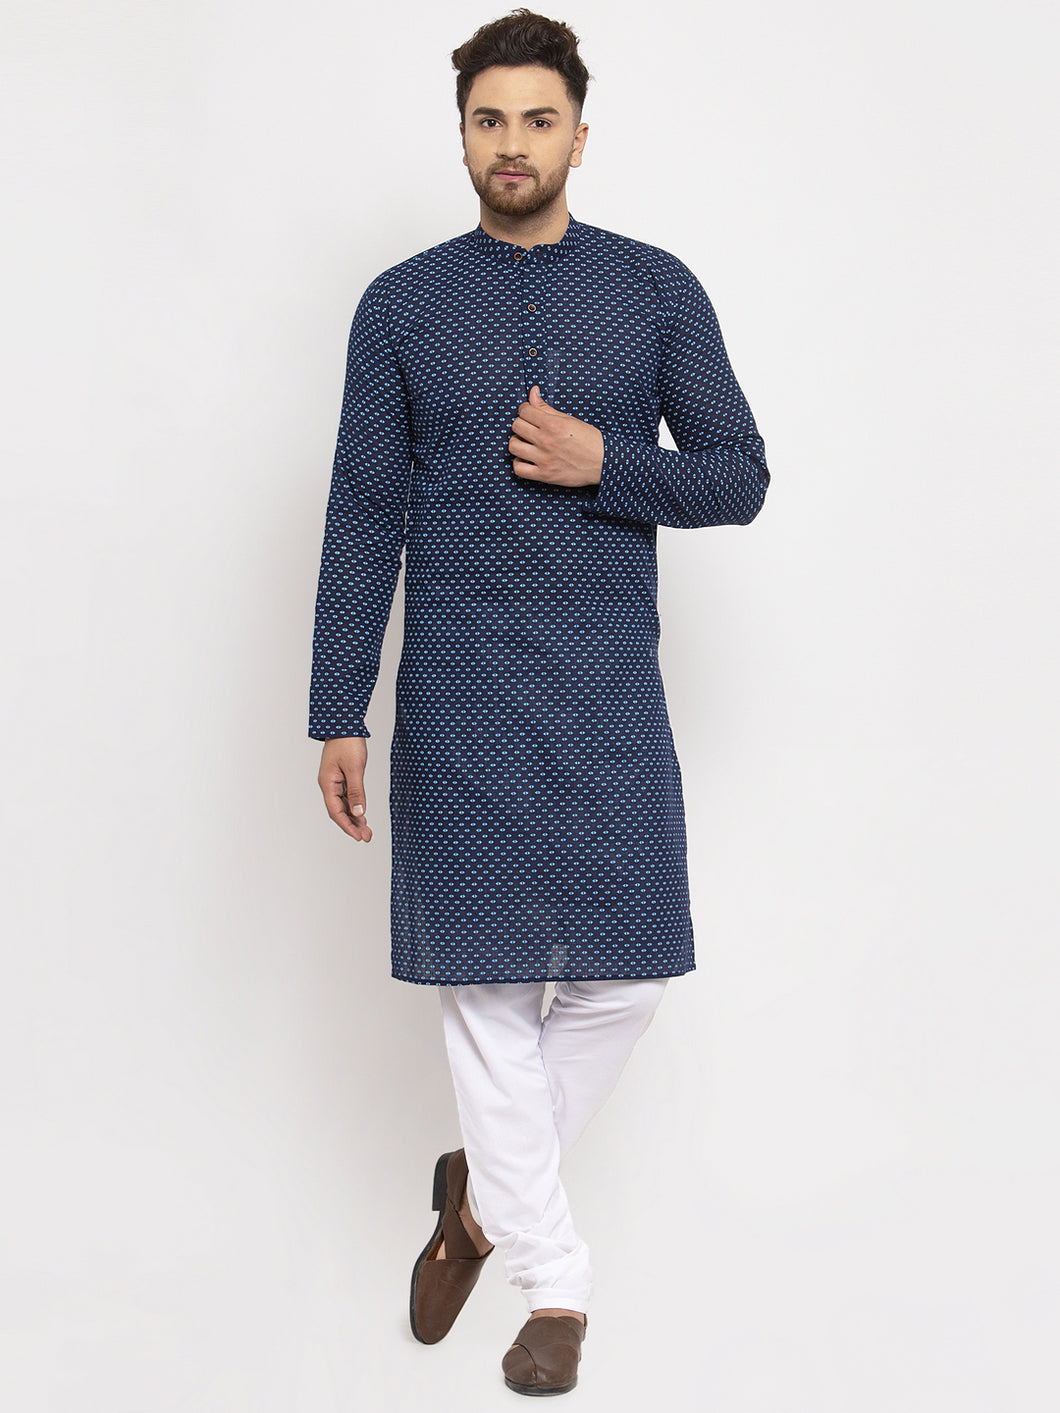 Jompers Men Blue Cotton Printed Kurta with Pyjamas ( JOKP 614 Blue )